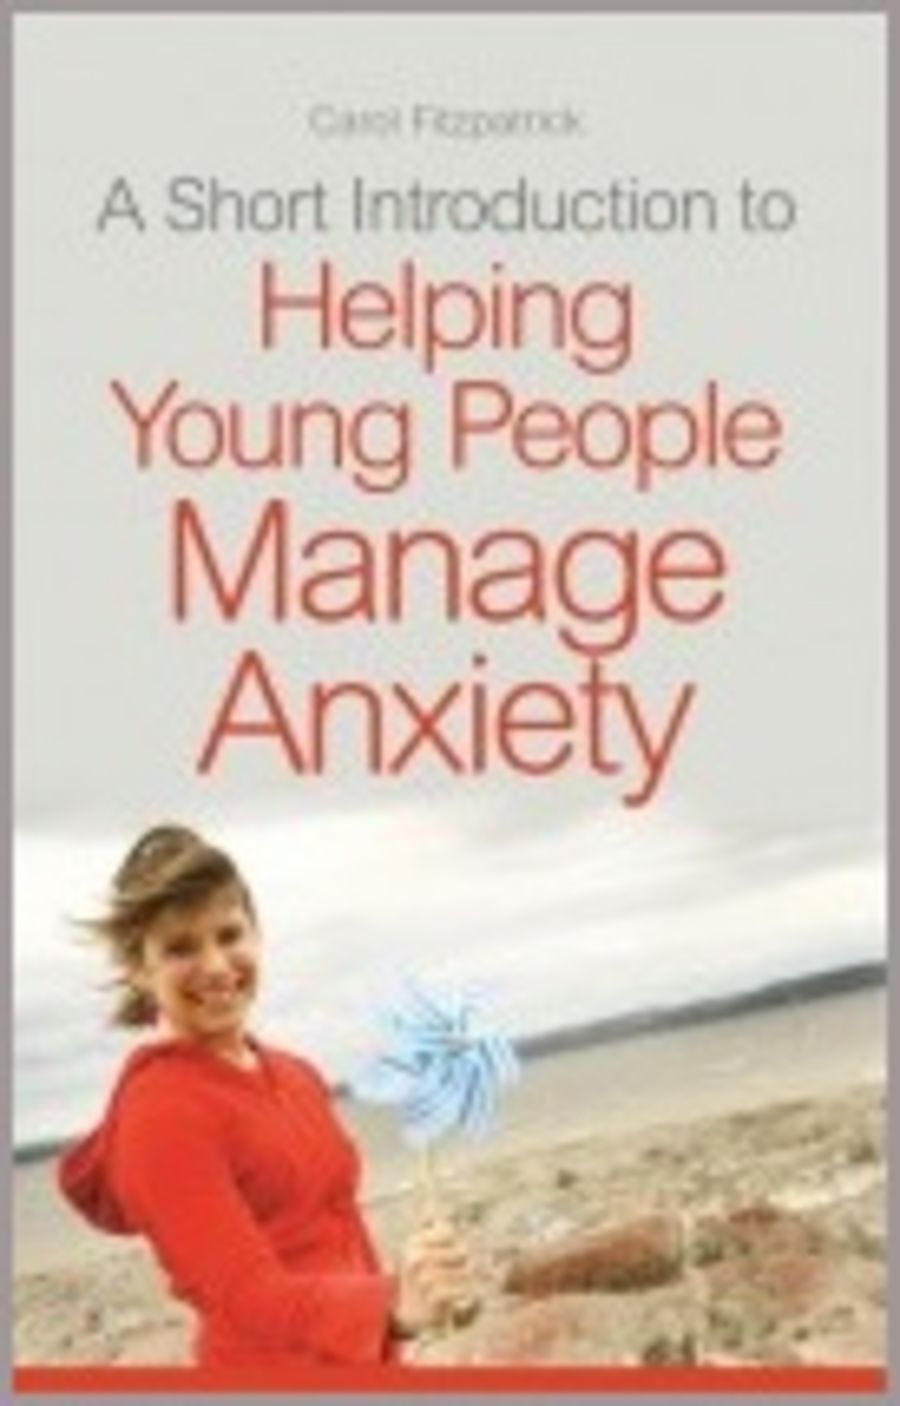 Short Introduction to Helping Young People Manage Anxiety